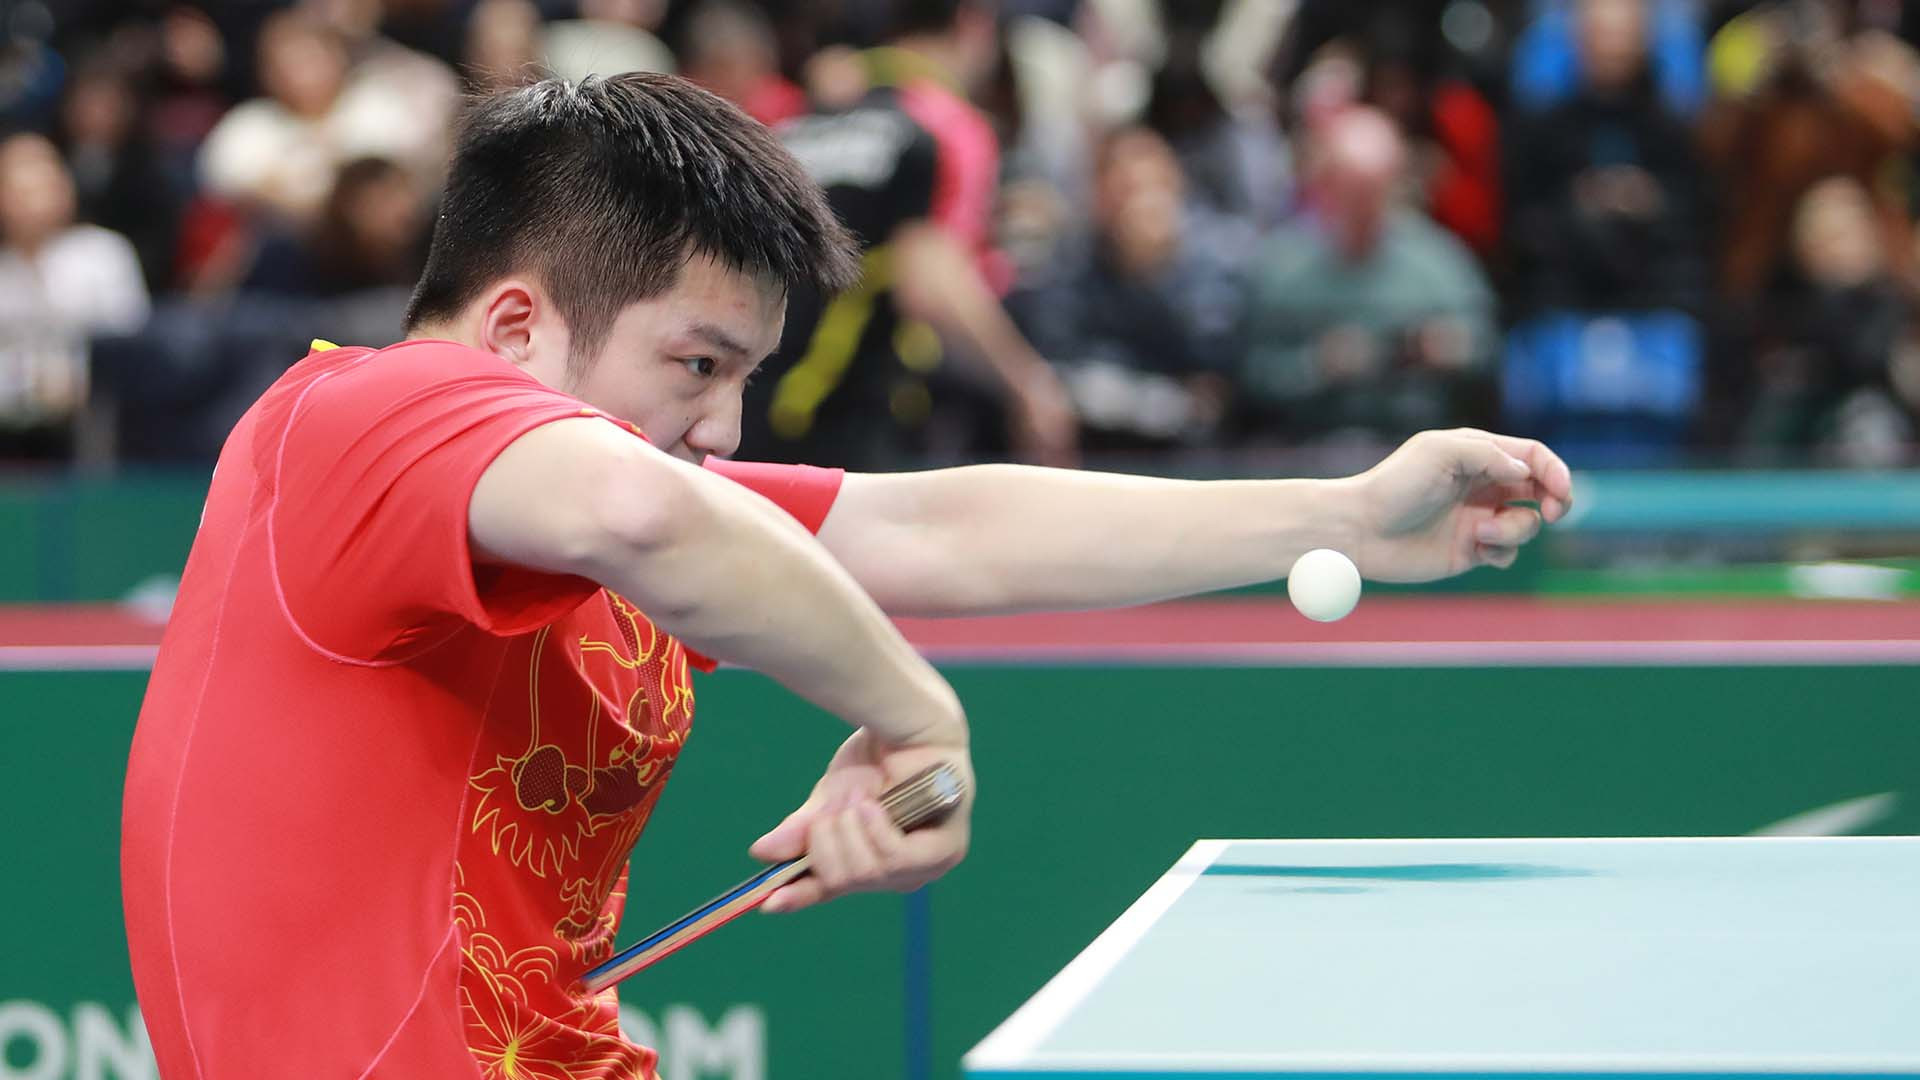 Hosts swept aside as China's men reach seventh consecutive ITTF Team World Cup final in London